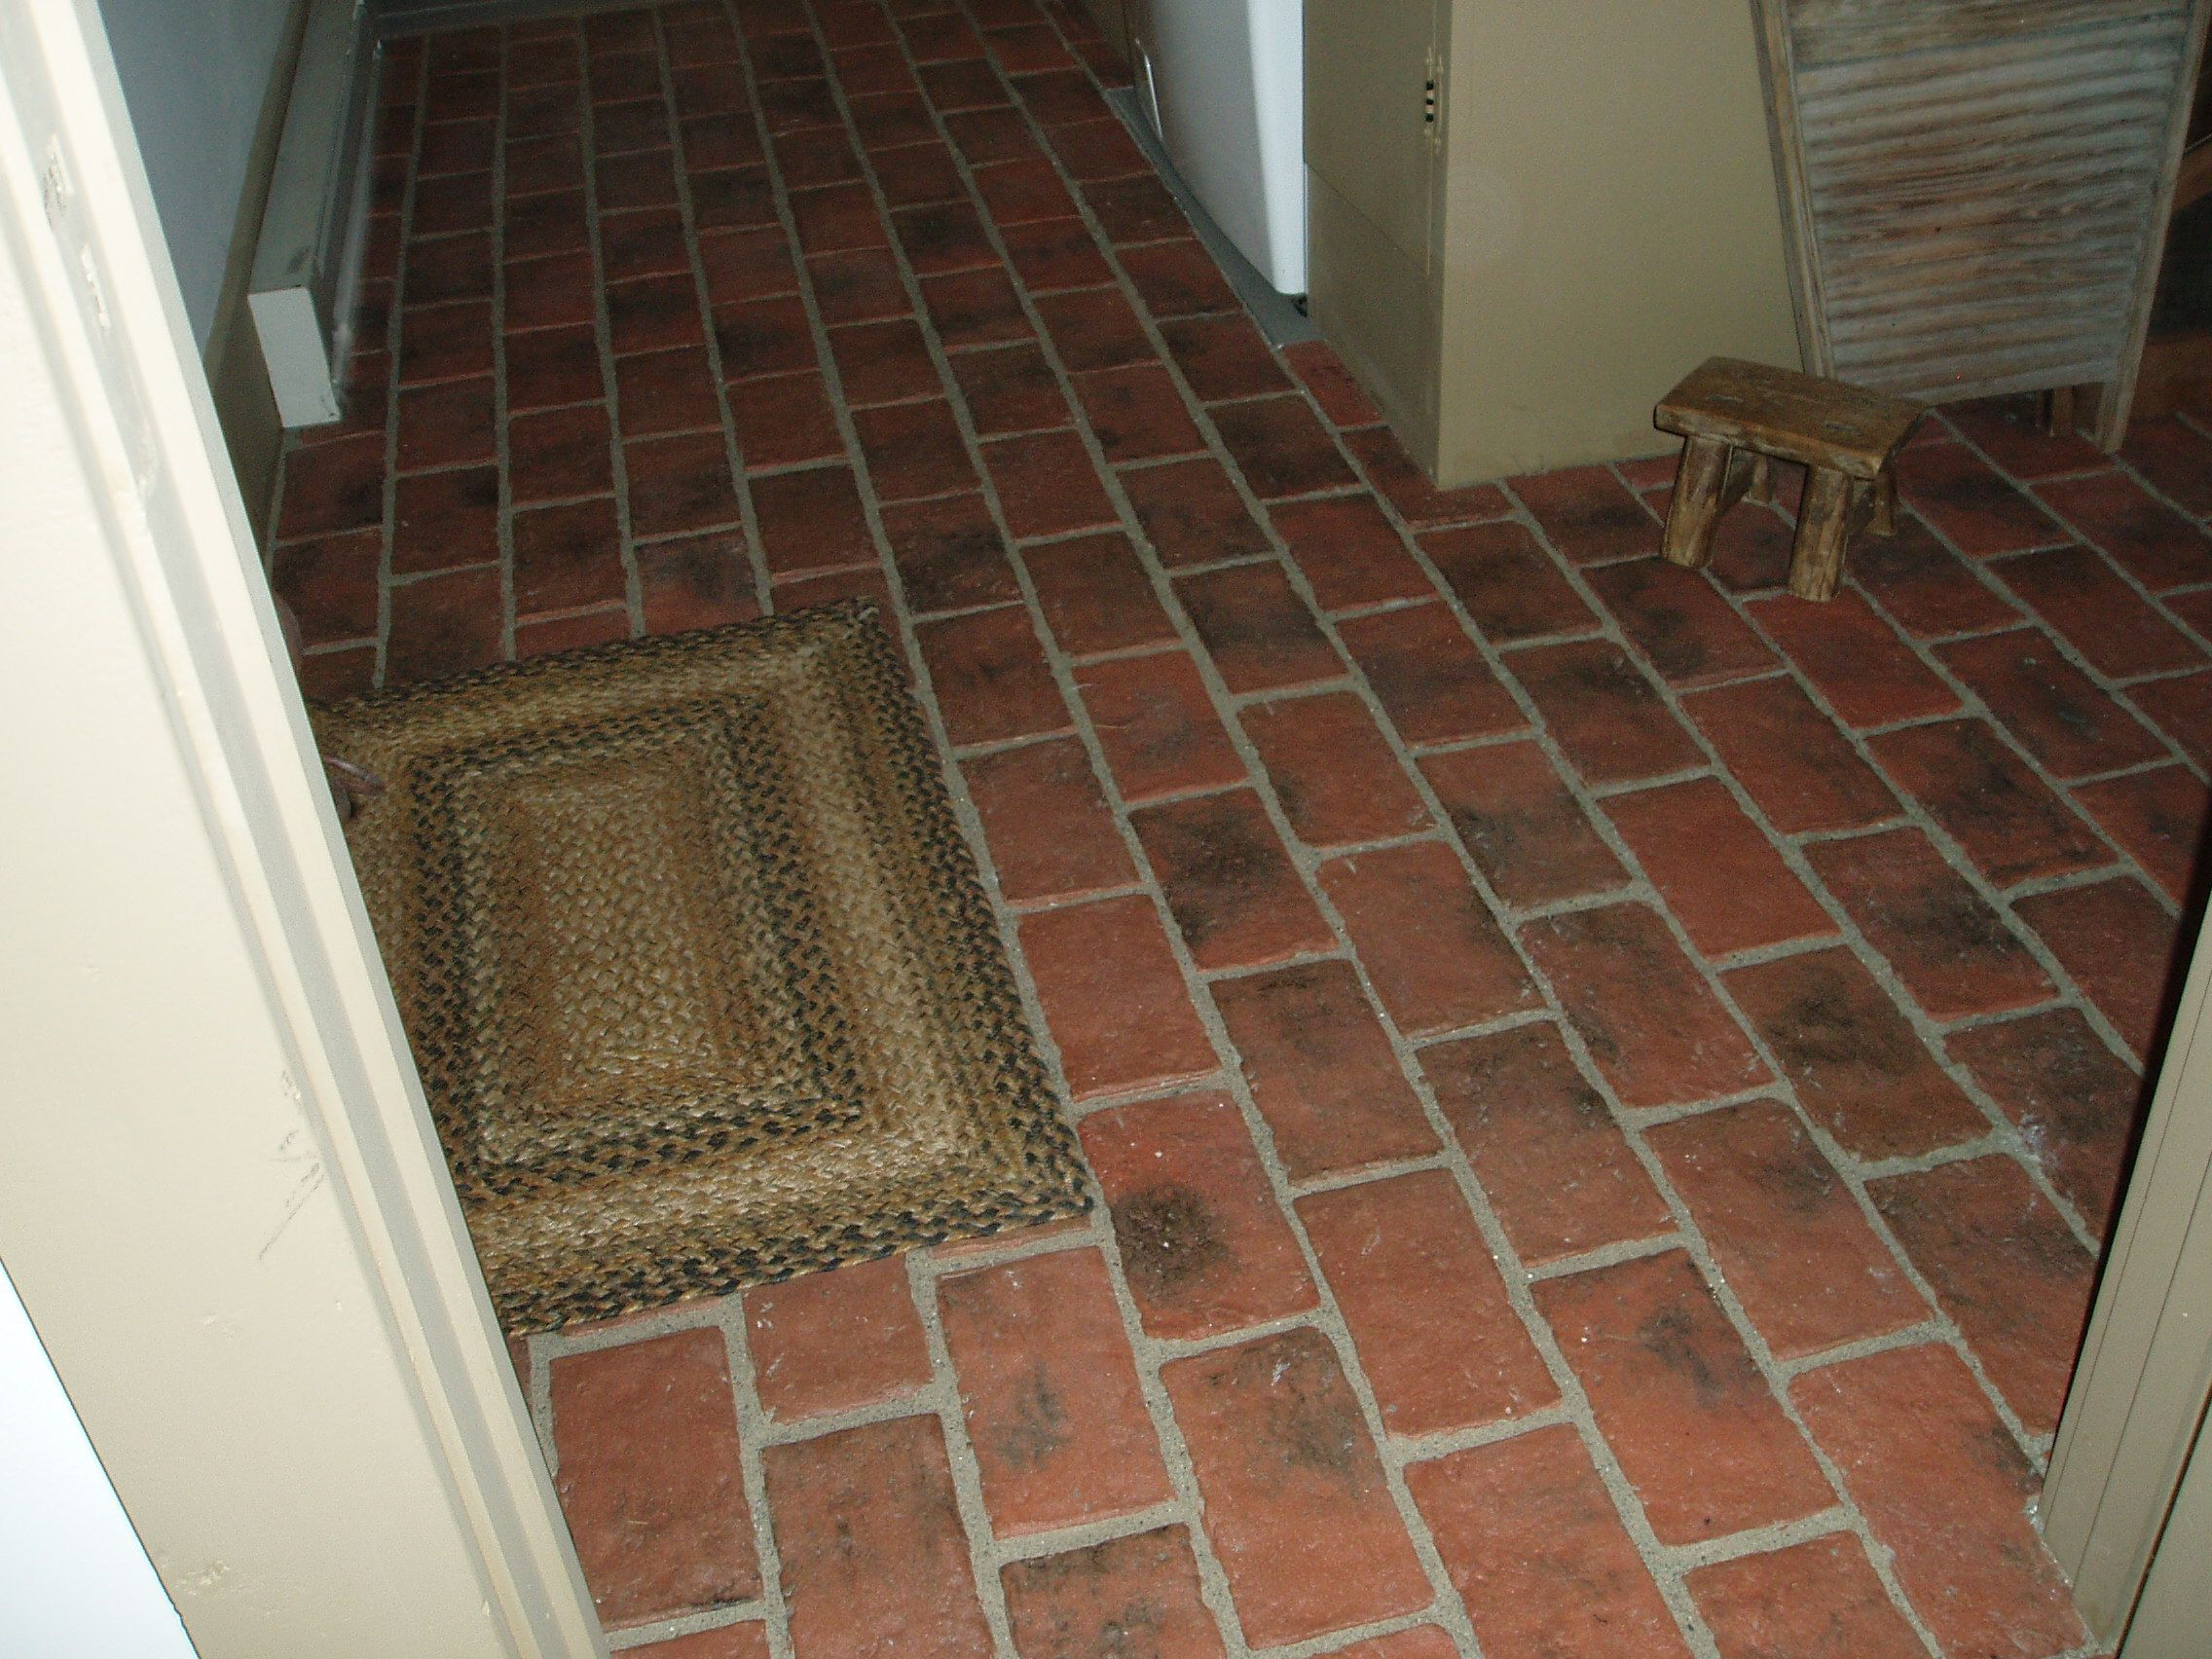 Brick tile entry floor wrights ferry tiles with charred black brick tile entry floor wrights ferry tiles with charred black in many of the dailygadgetfo Images